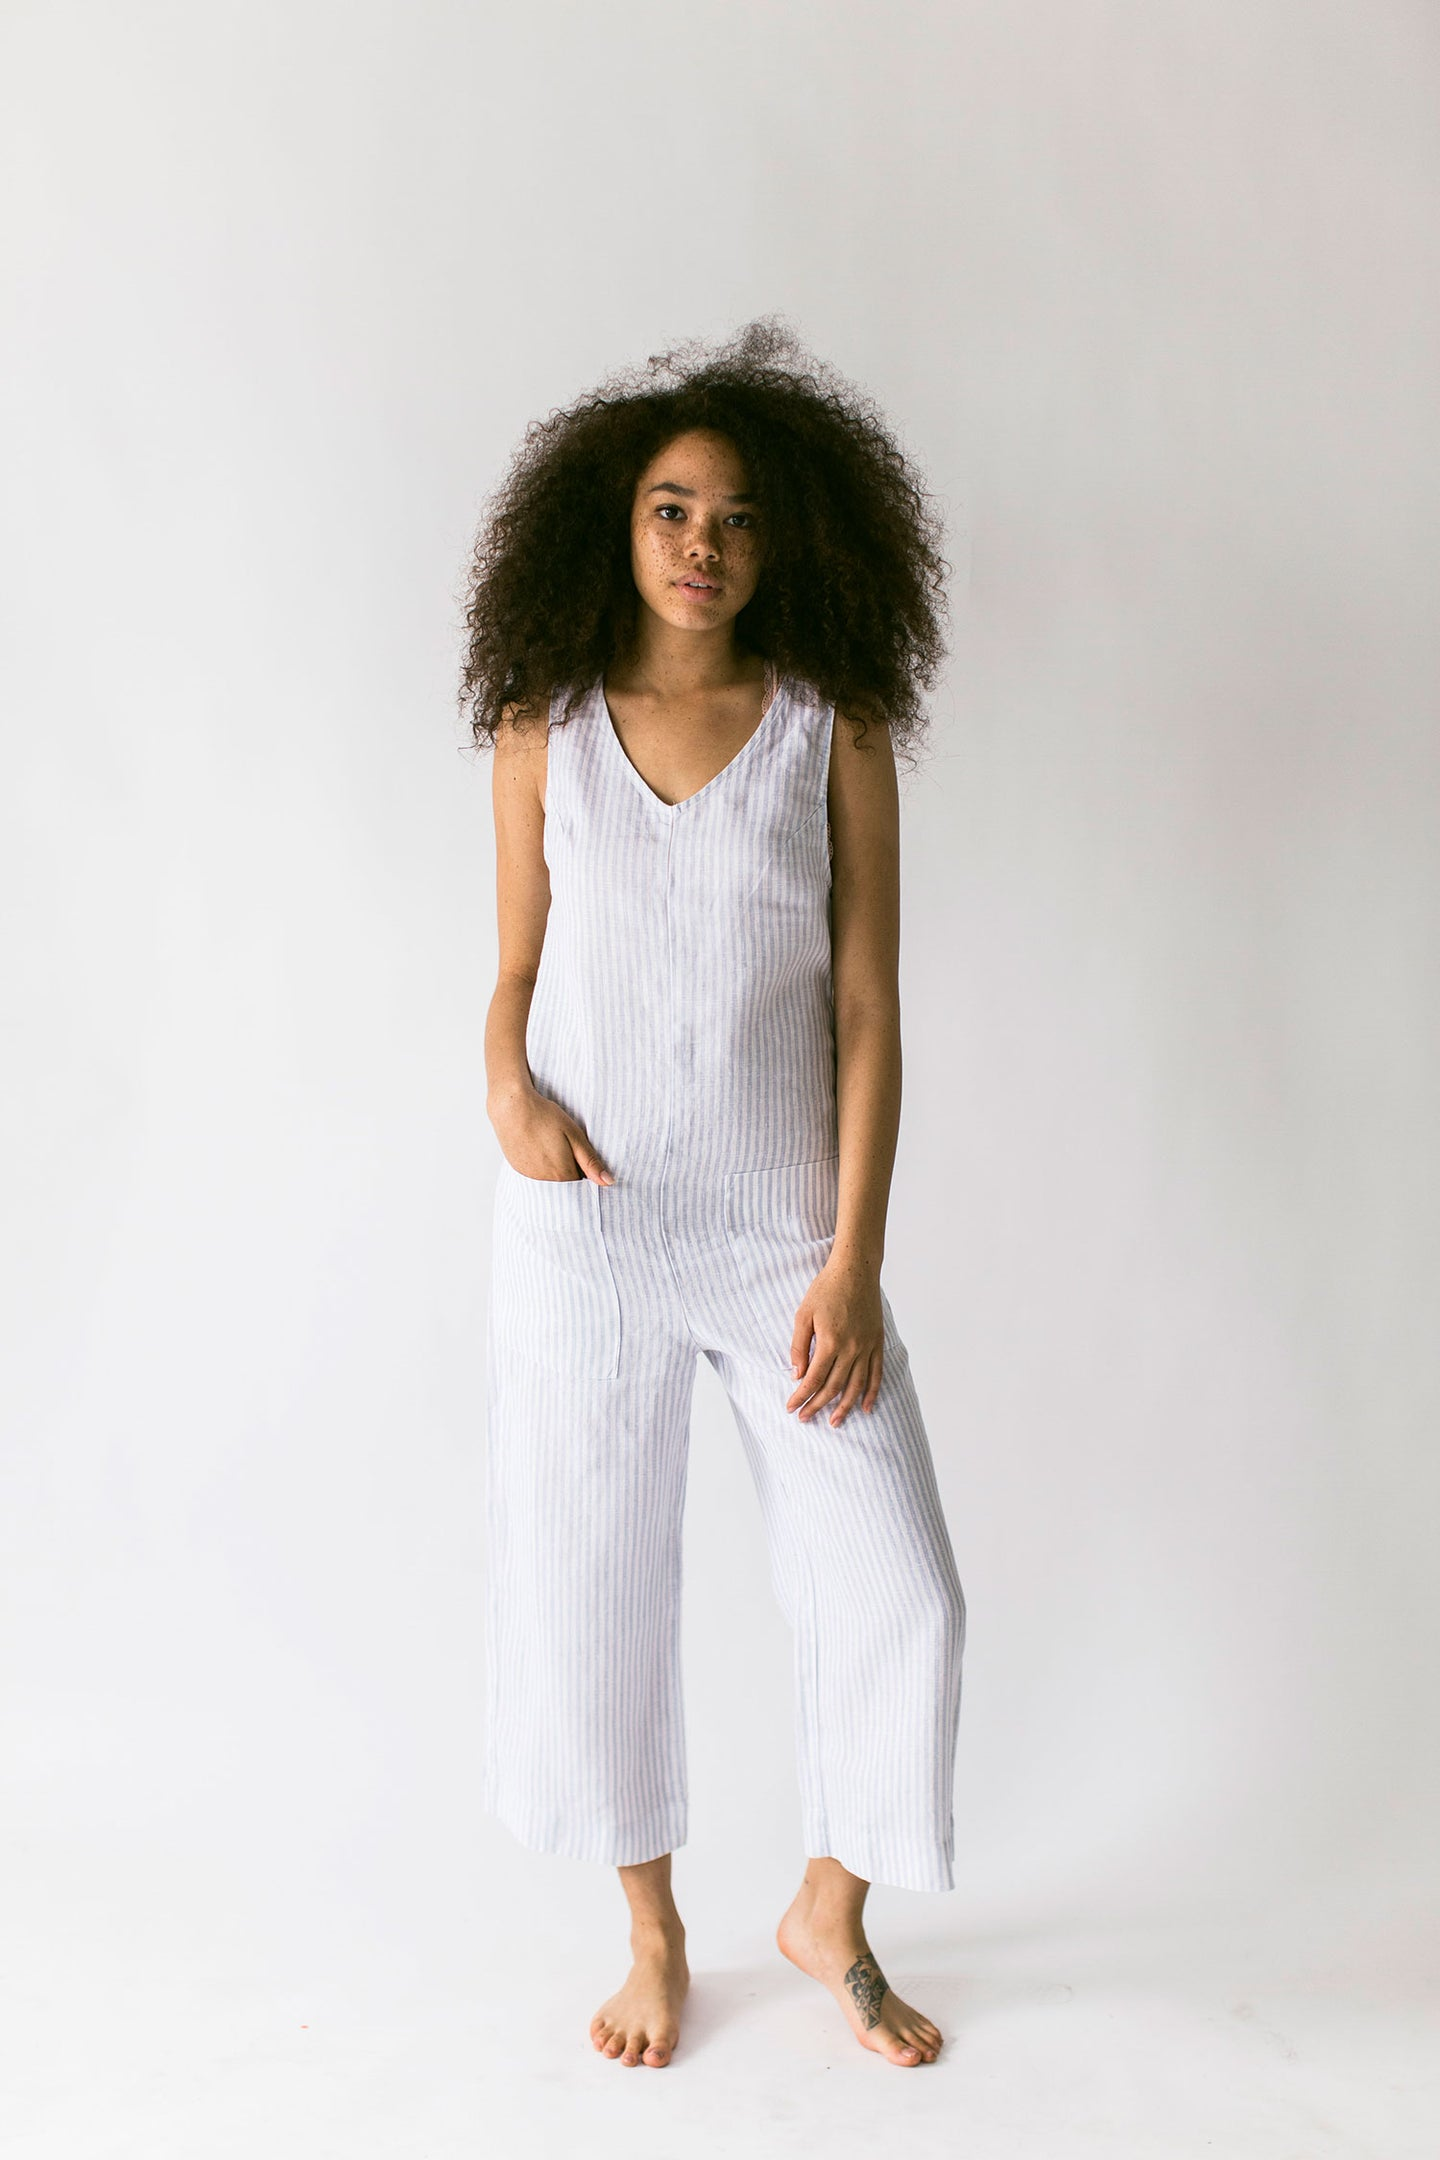 The Linen Jumpsuit in Gray Dawn Stripe (XL) - FINAL SALE, LAST CHANCE